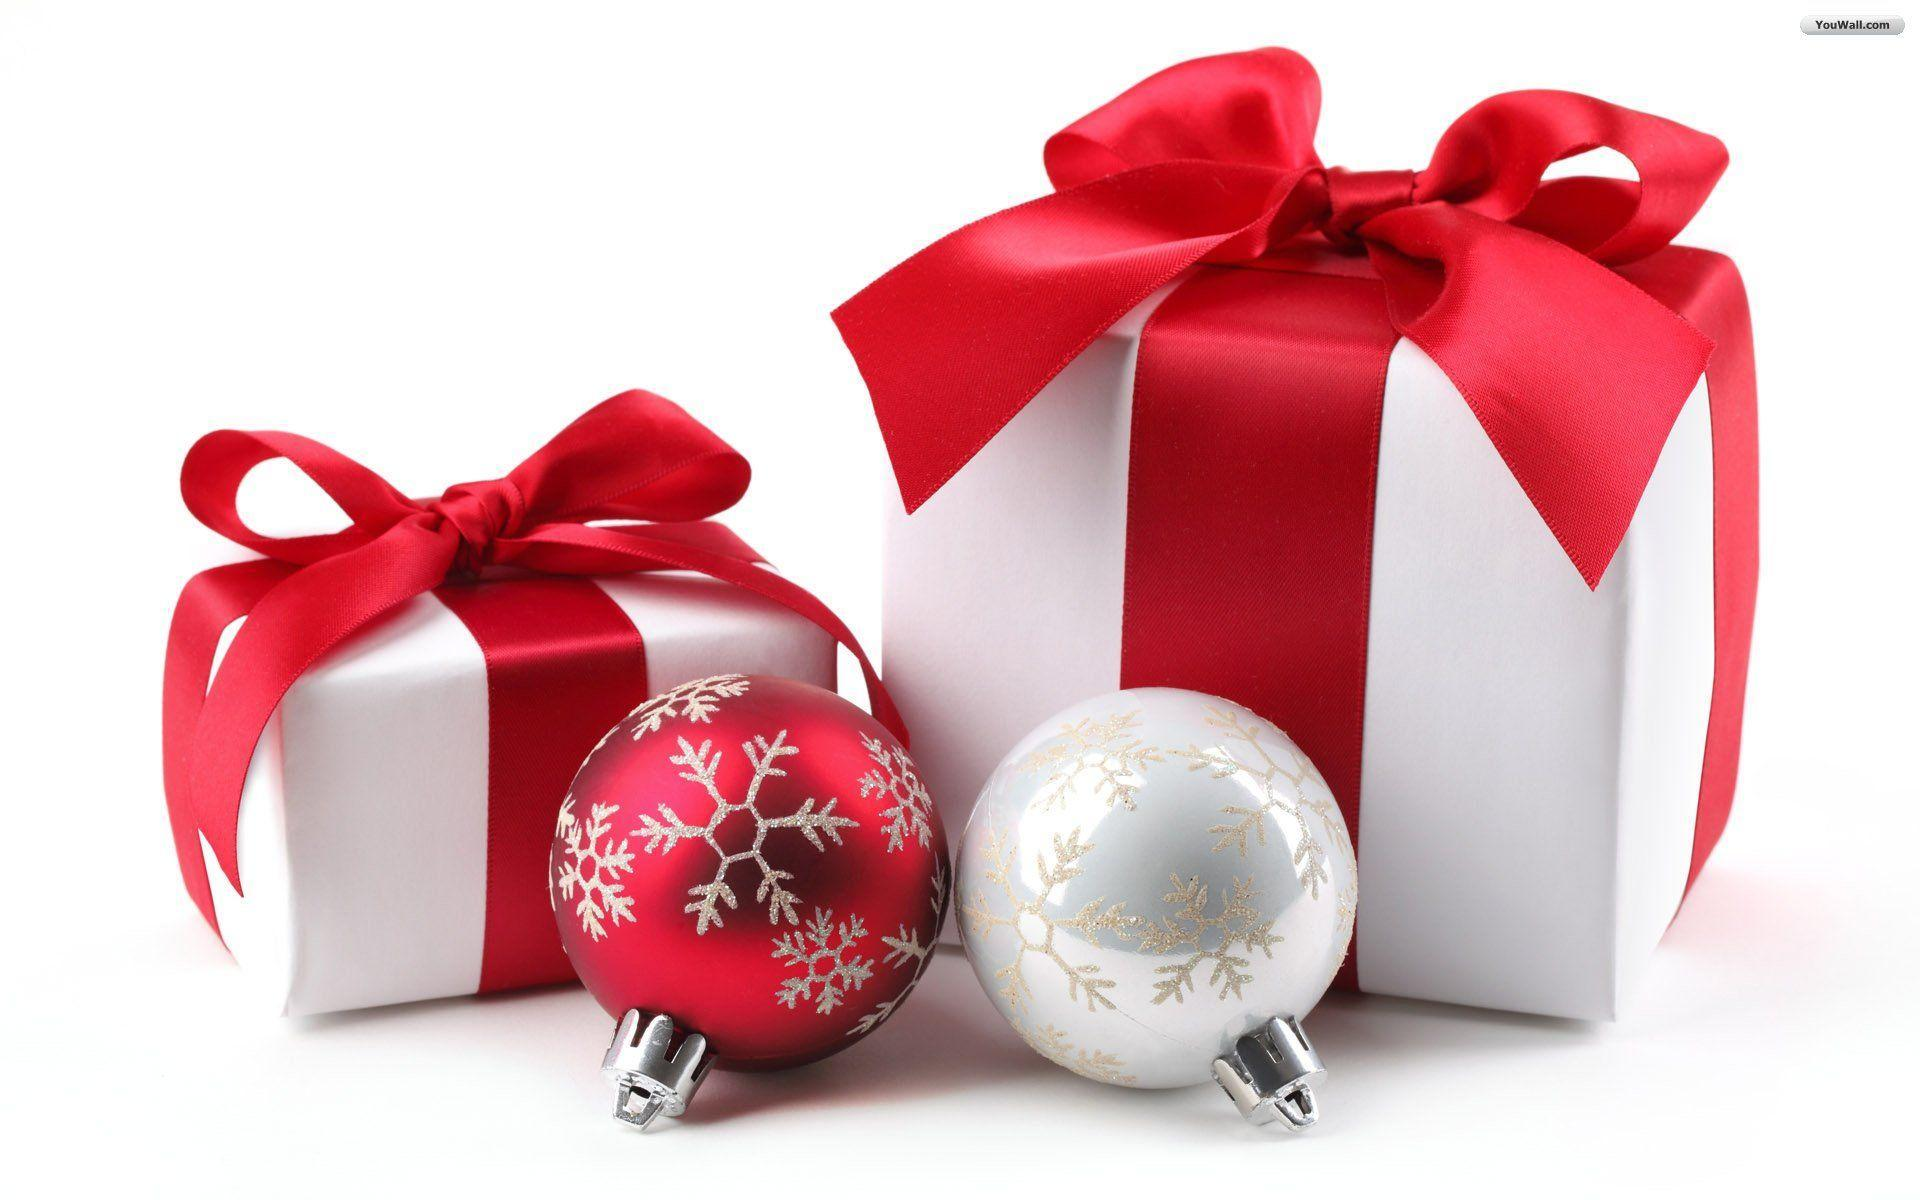 Christmas Present Wallpapers - Wallpaper Cave